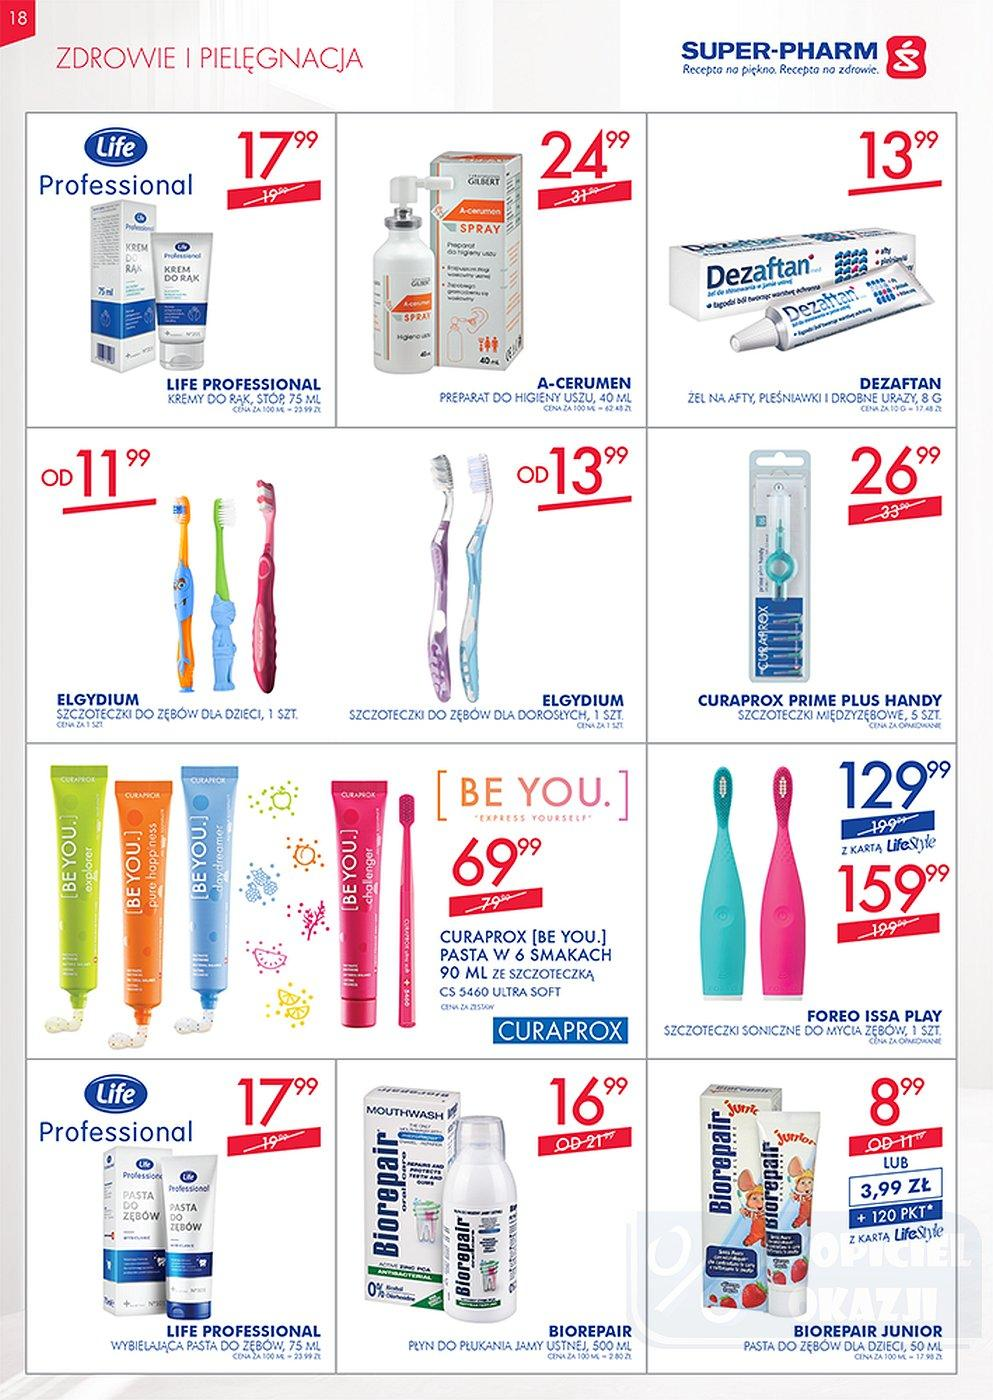 Gazetka promocyjna Superpharm do 10/10/2018 str.18